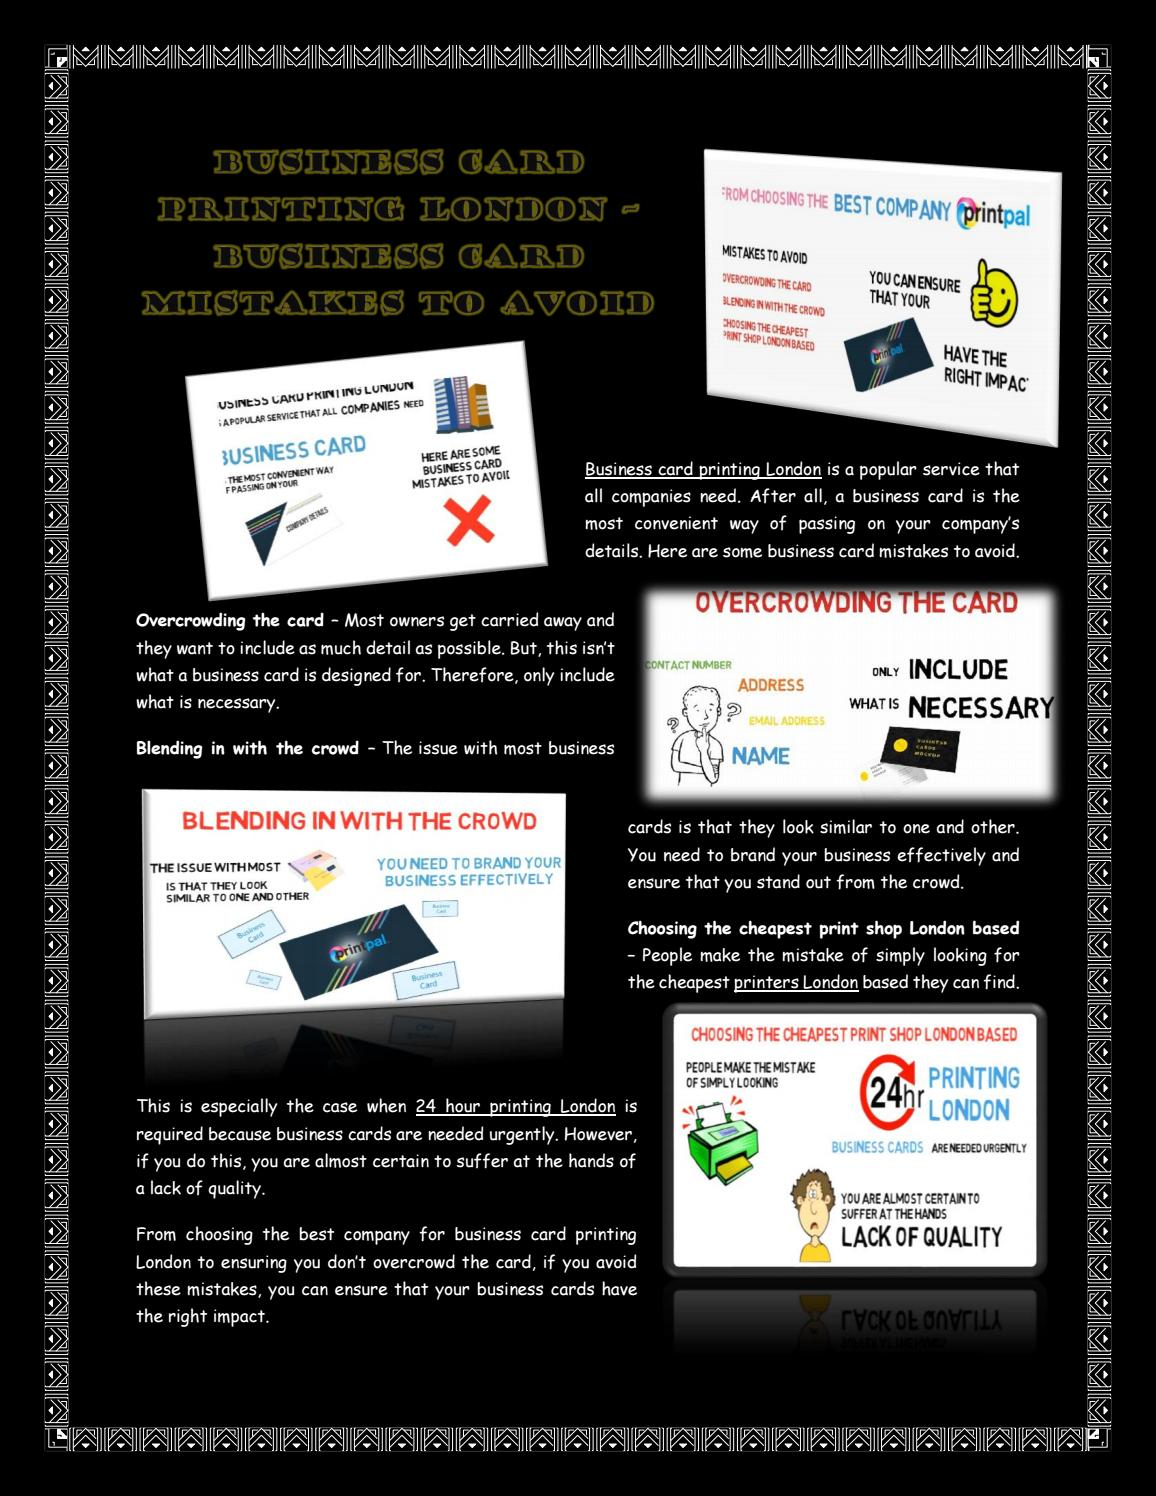 Business Card Printing London – Business Card Mistakes To Avoid by ...